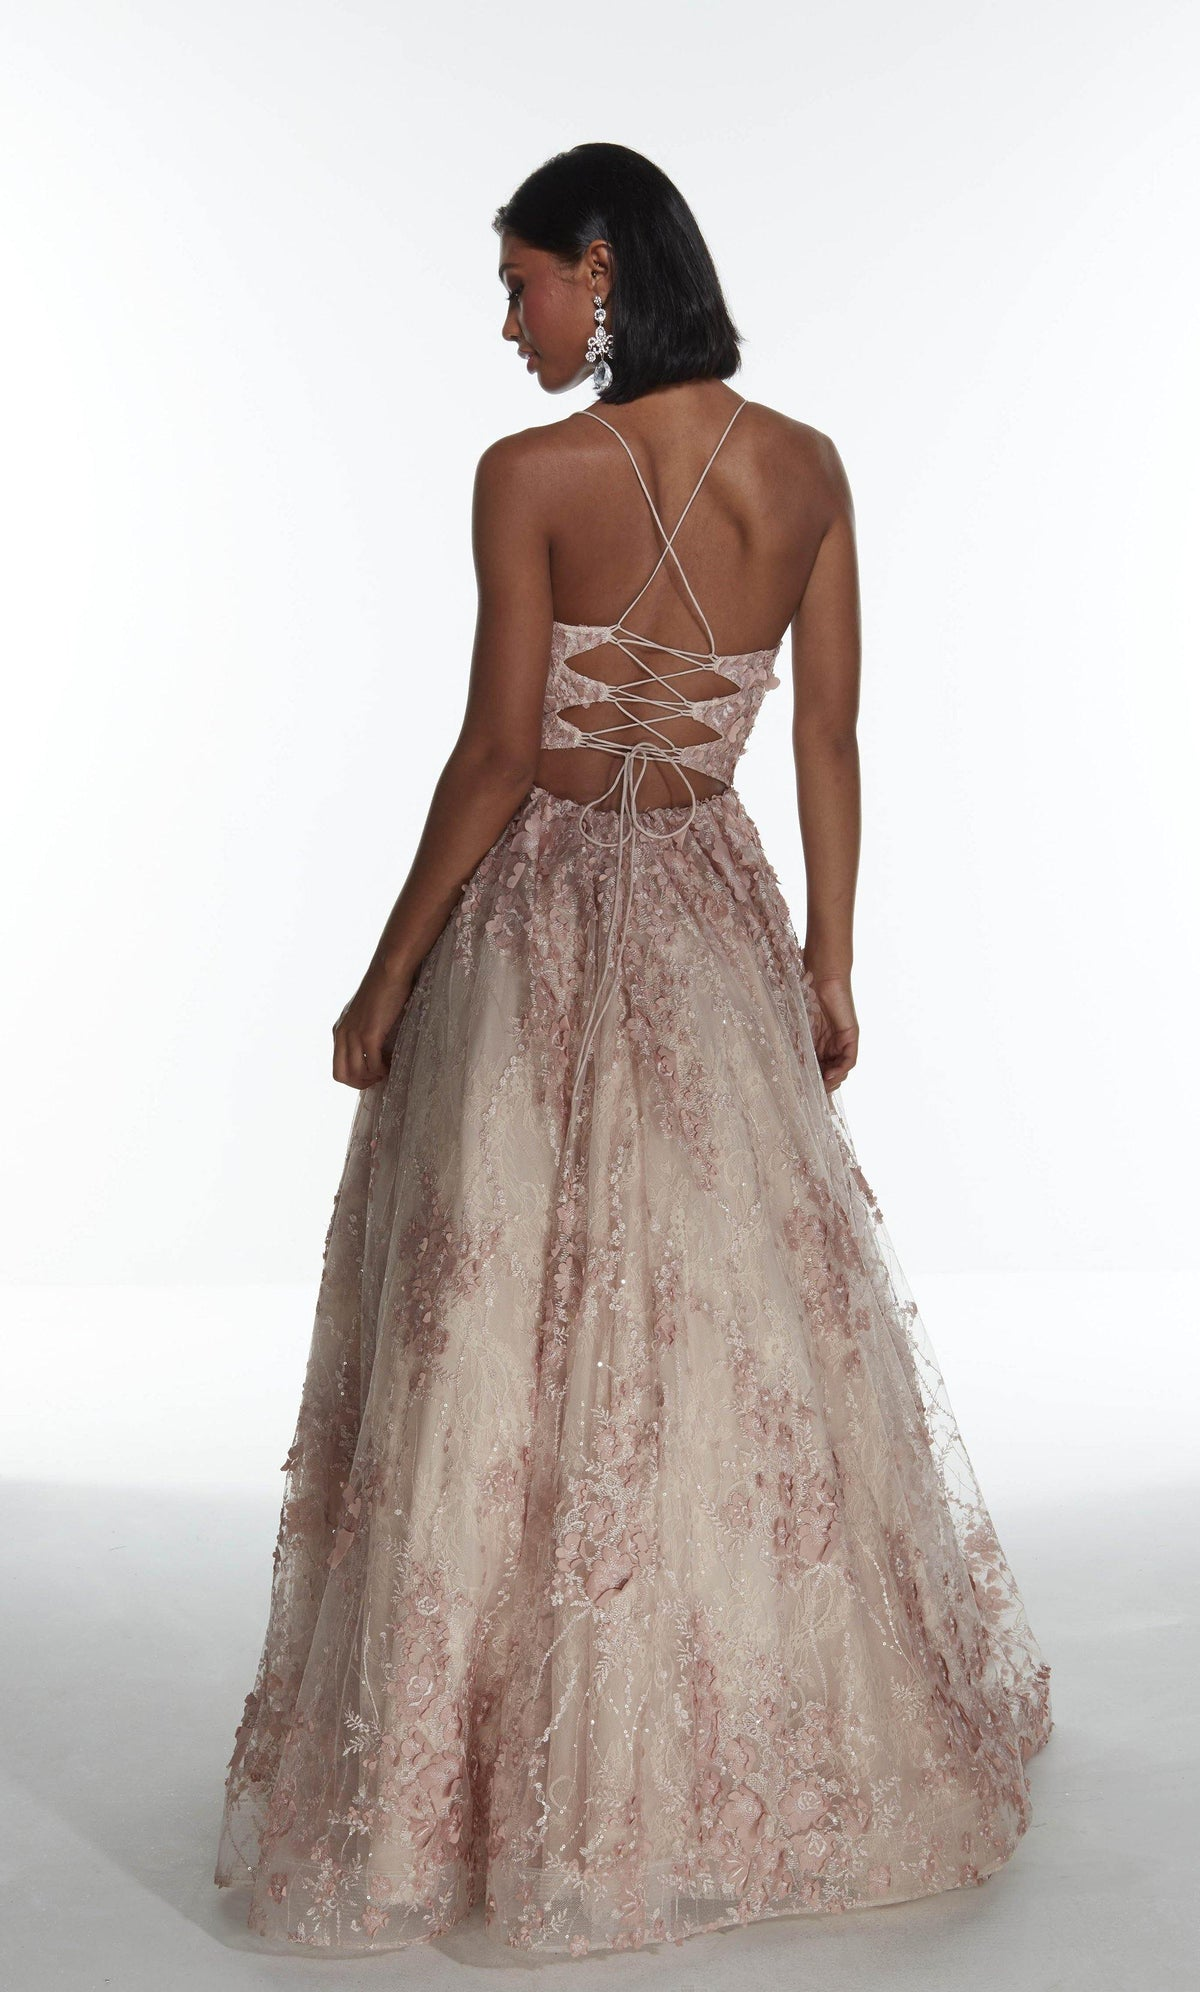 French Pink 3D lace, glitter and stone embellished ballgown with a strappy back and train